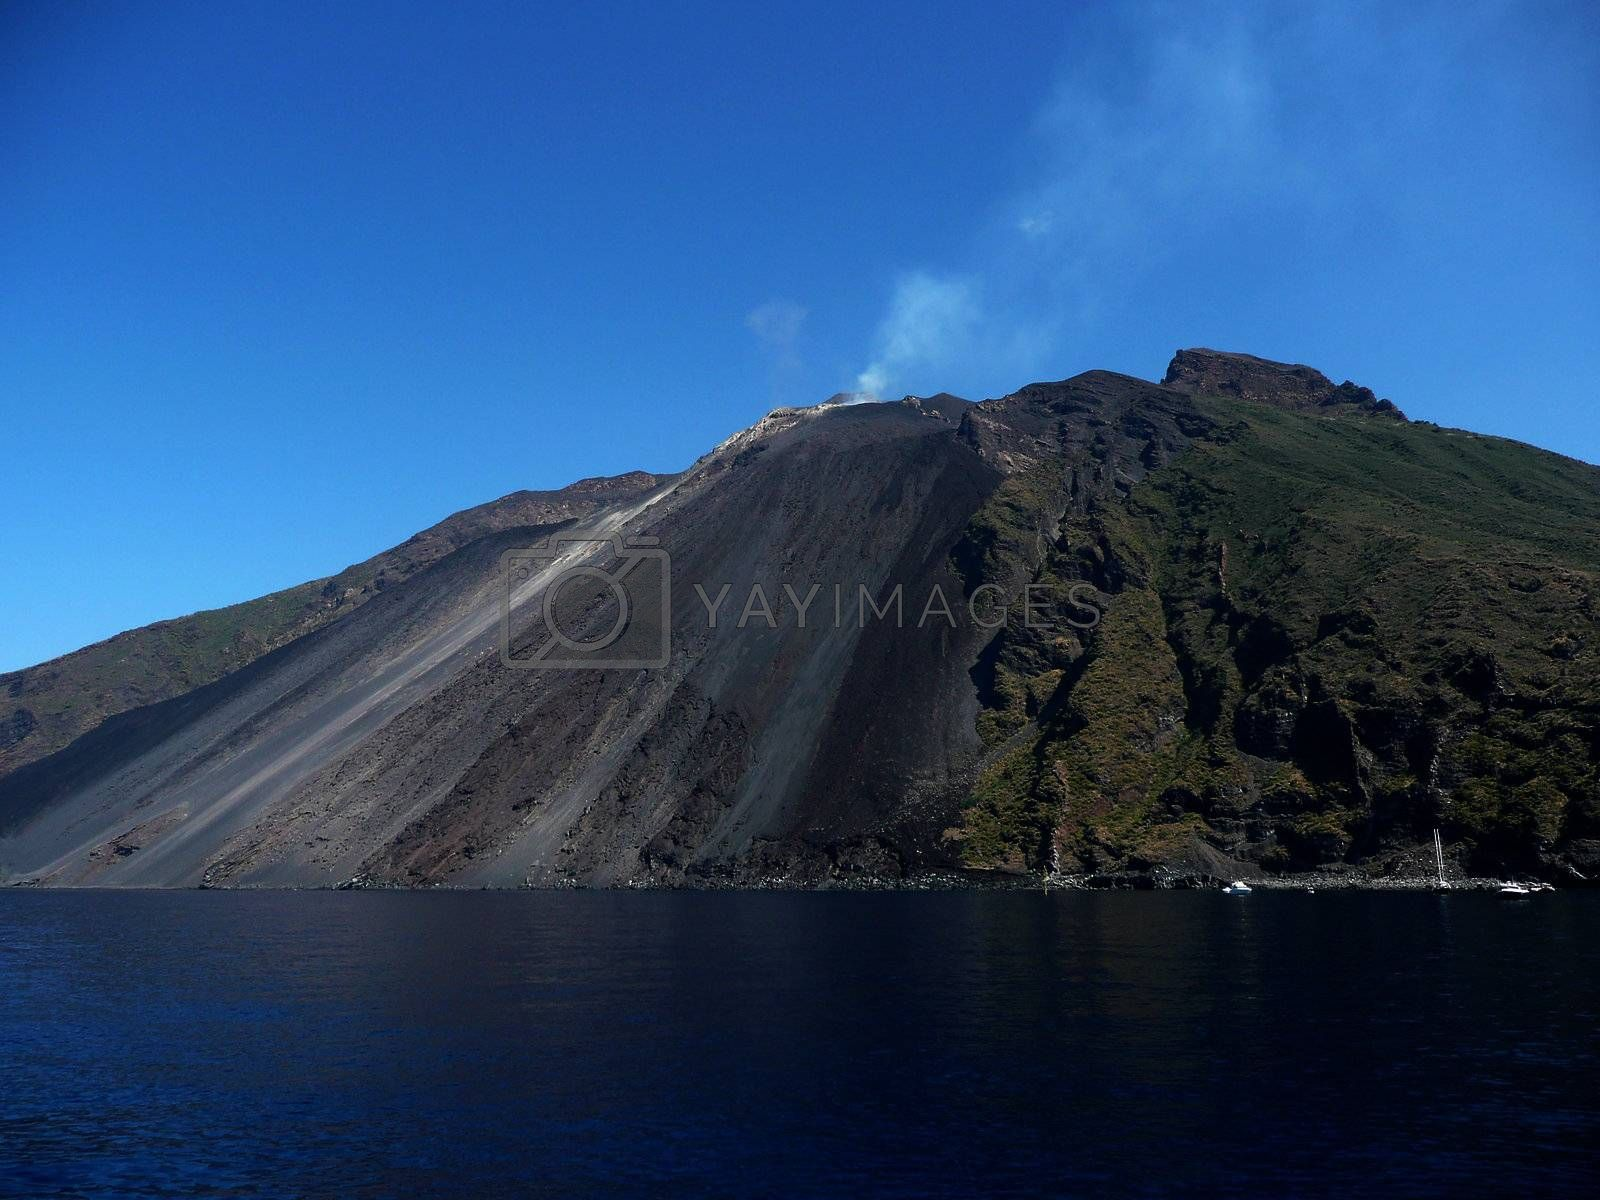 Stromboli, active volcano which is part of the Aeolian Islands A by Marco Rubino